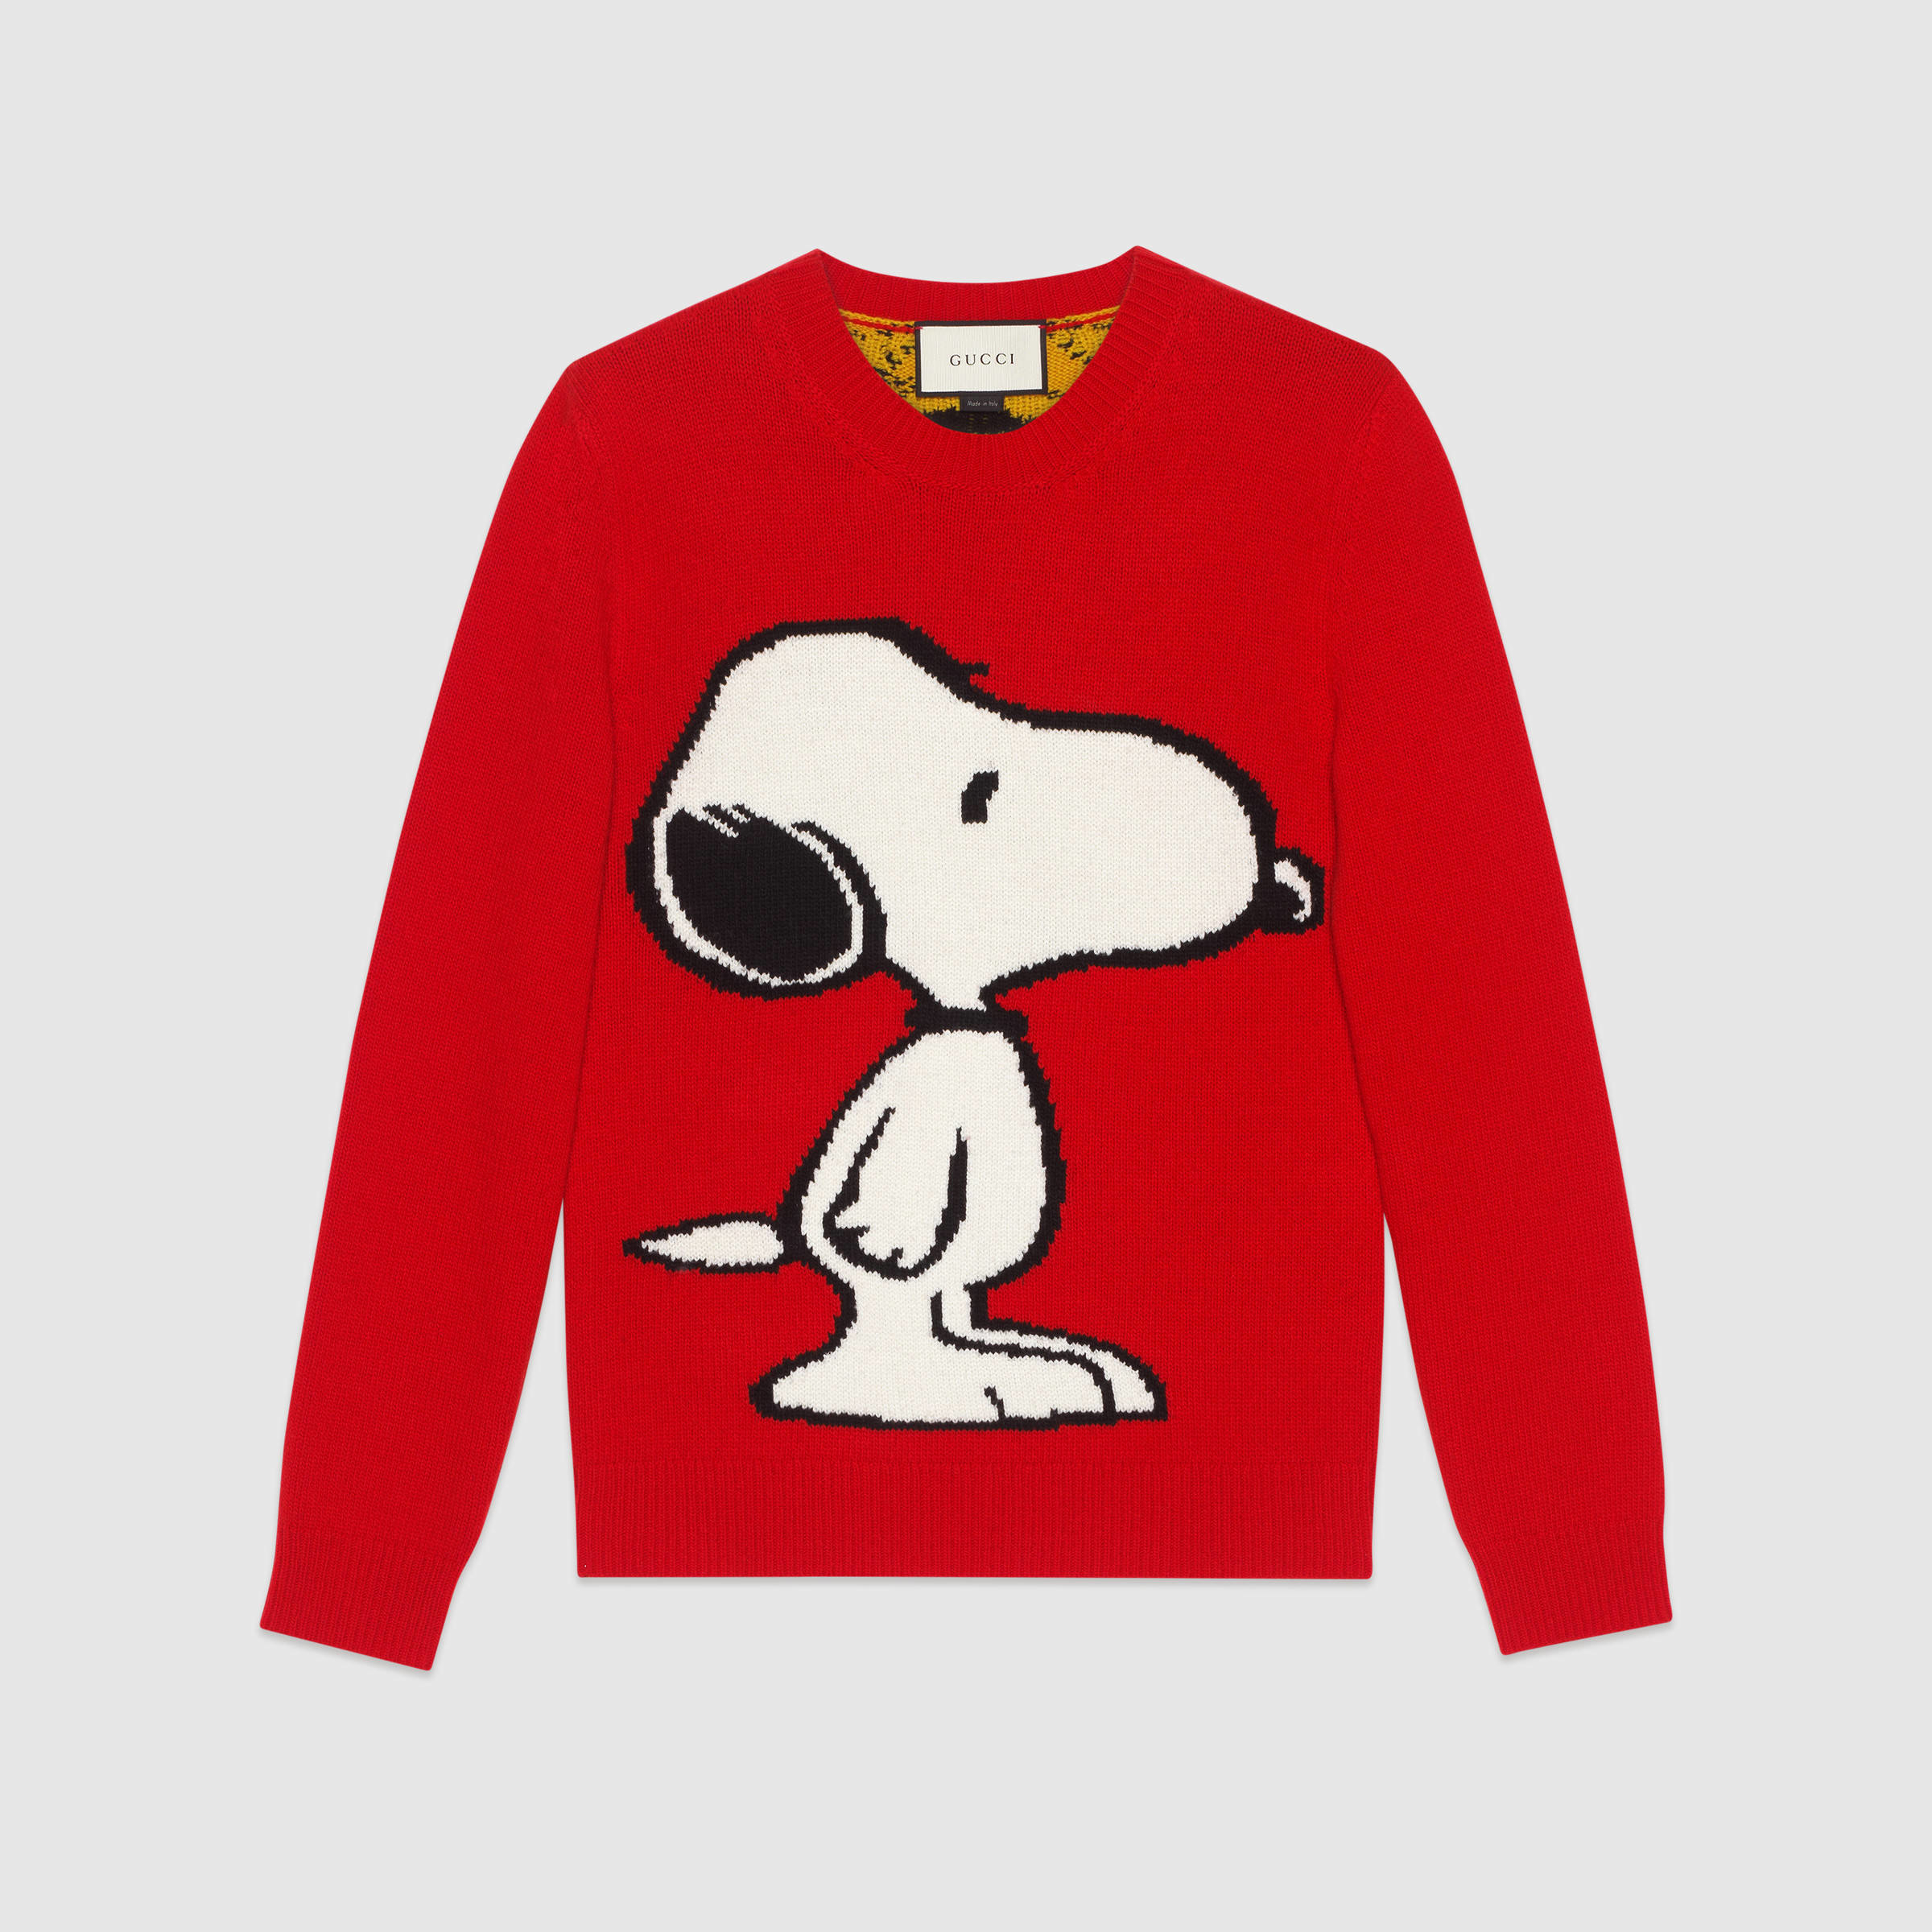 99520a10736 Lyst - Gucci Snoopy Tiger Stripe Sweater in Red for Men